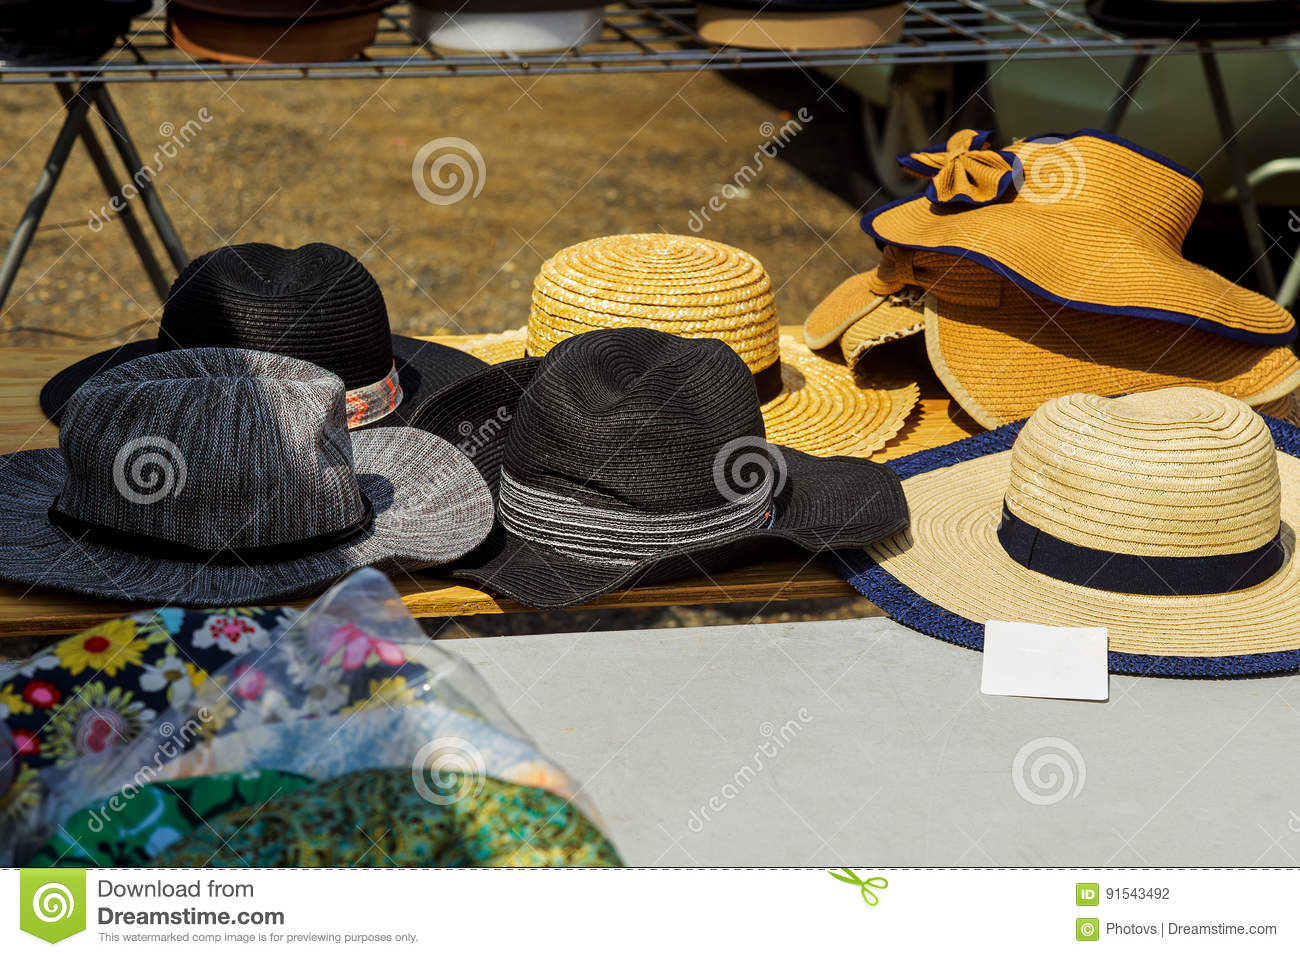 9733ac5624200 Summer hats for sale in a market stall outdoor. More similar stock images